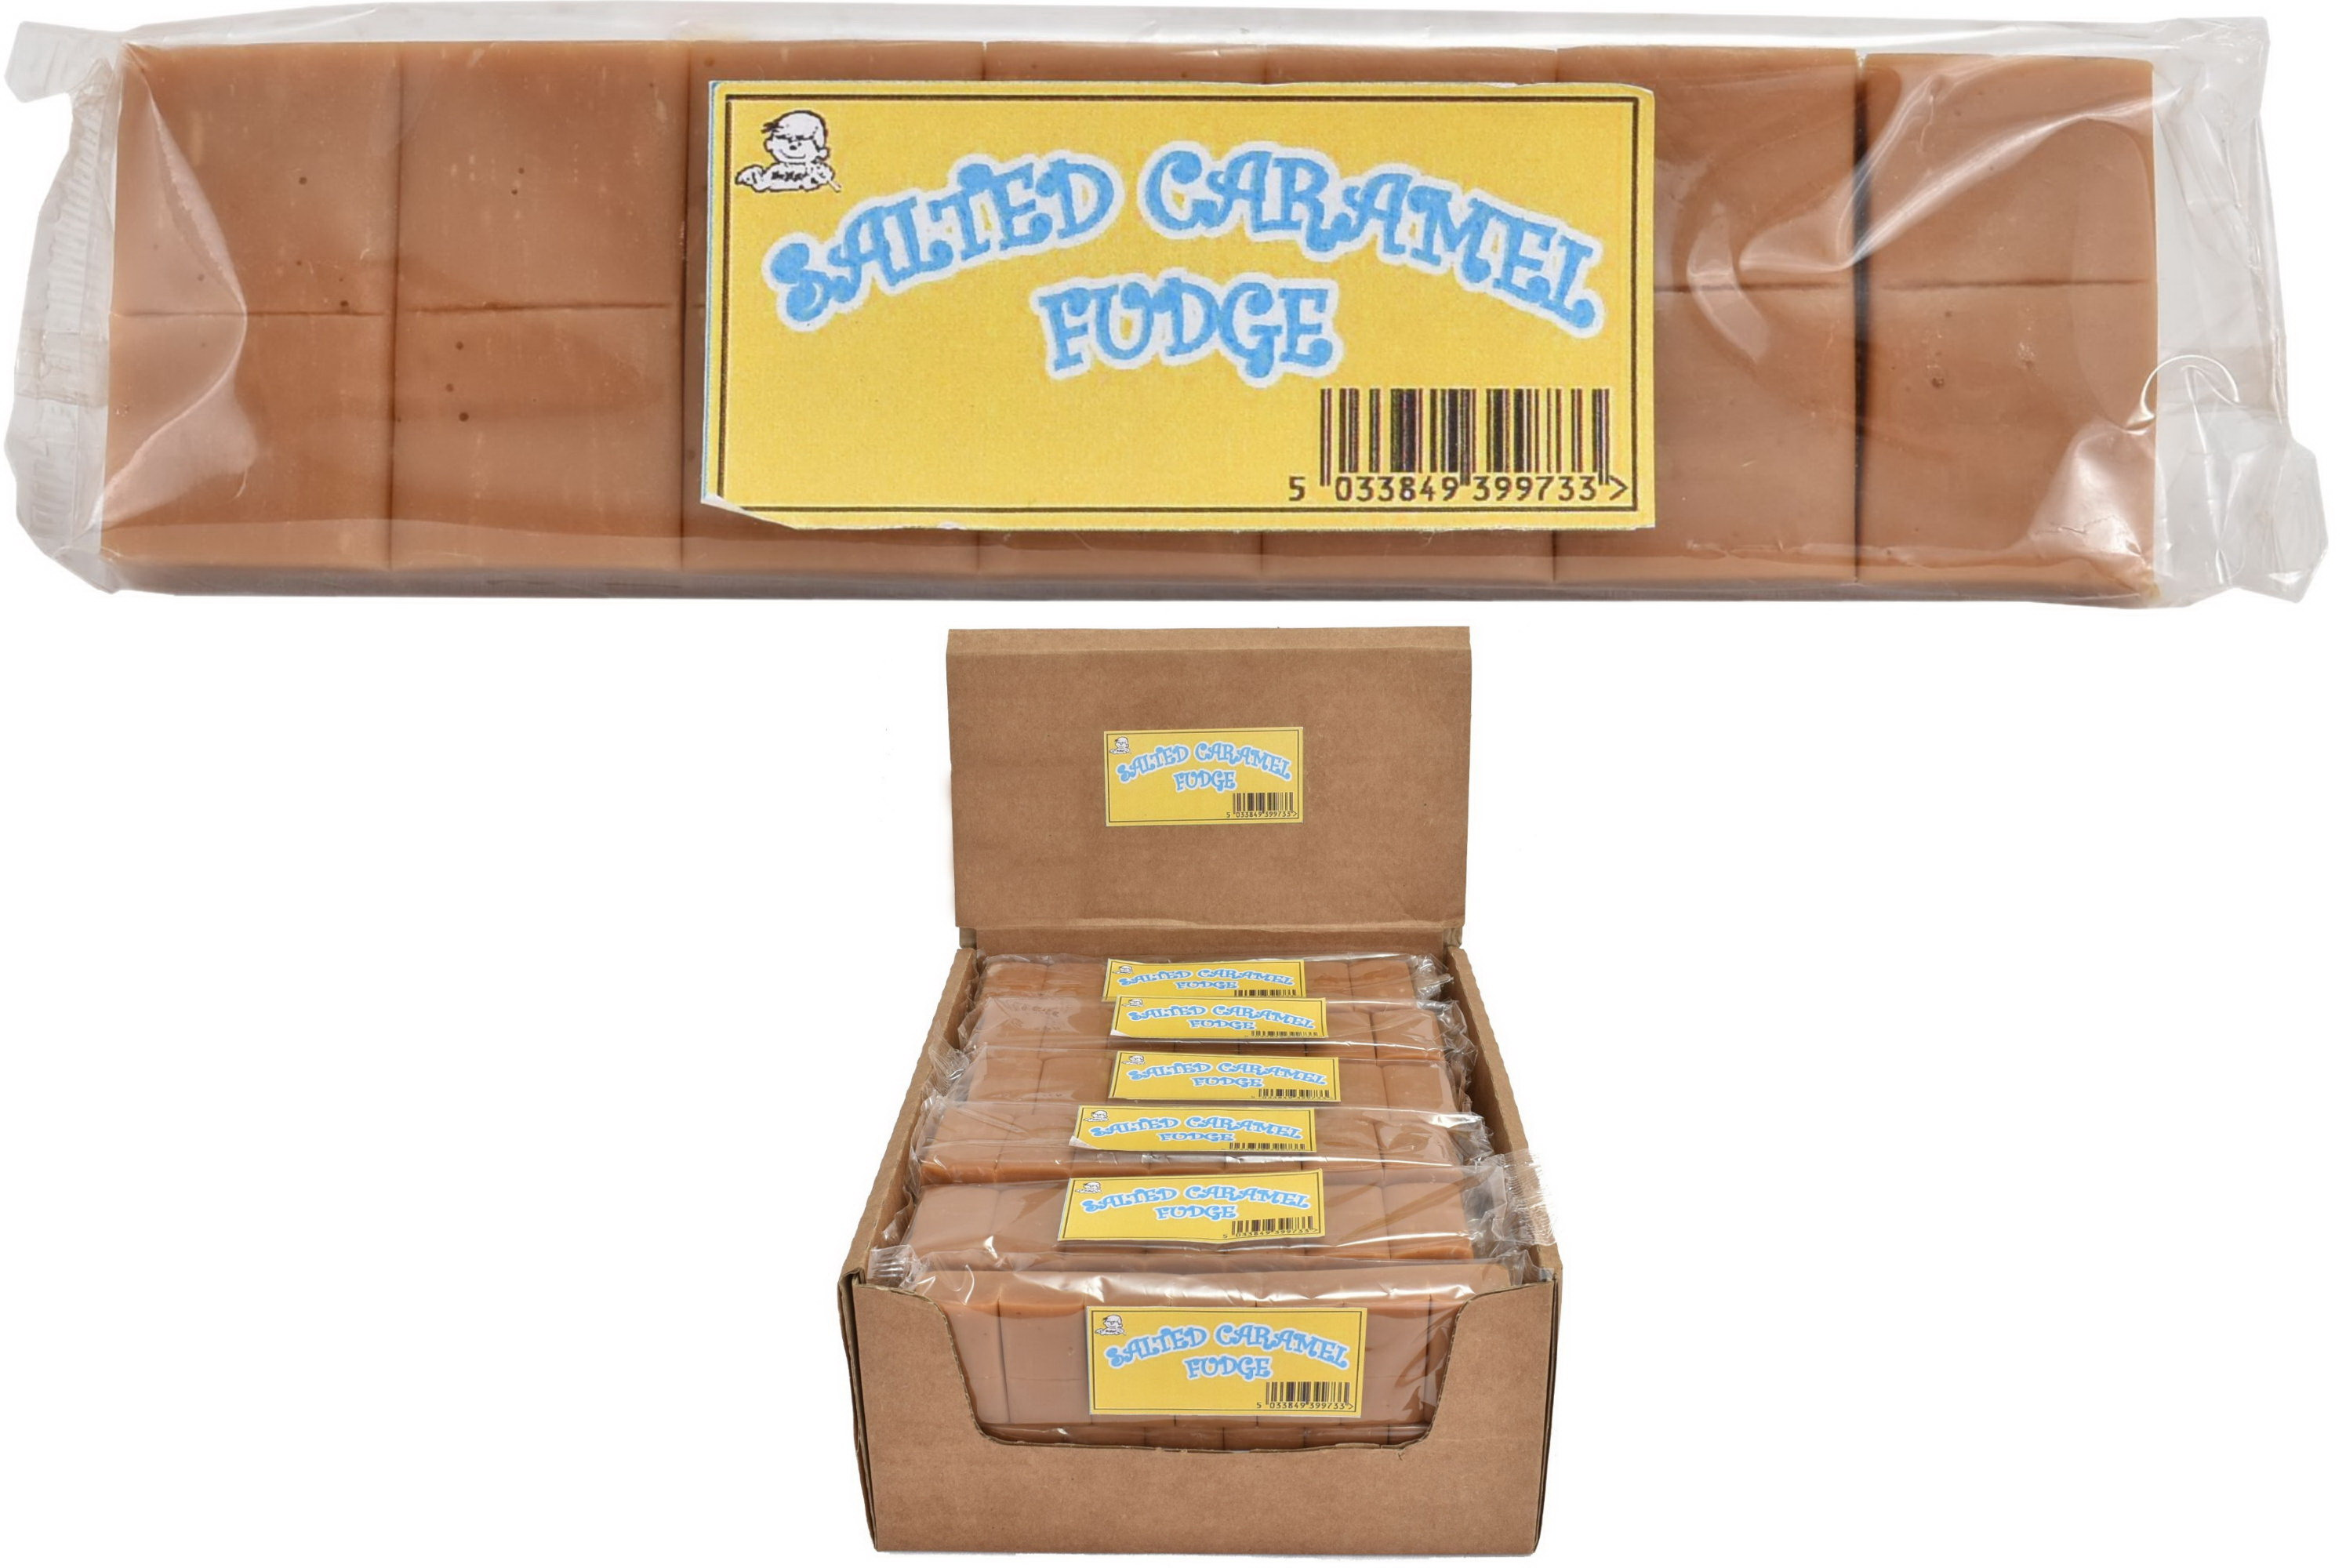 130g Salted Caramel Fudge Bar